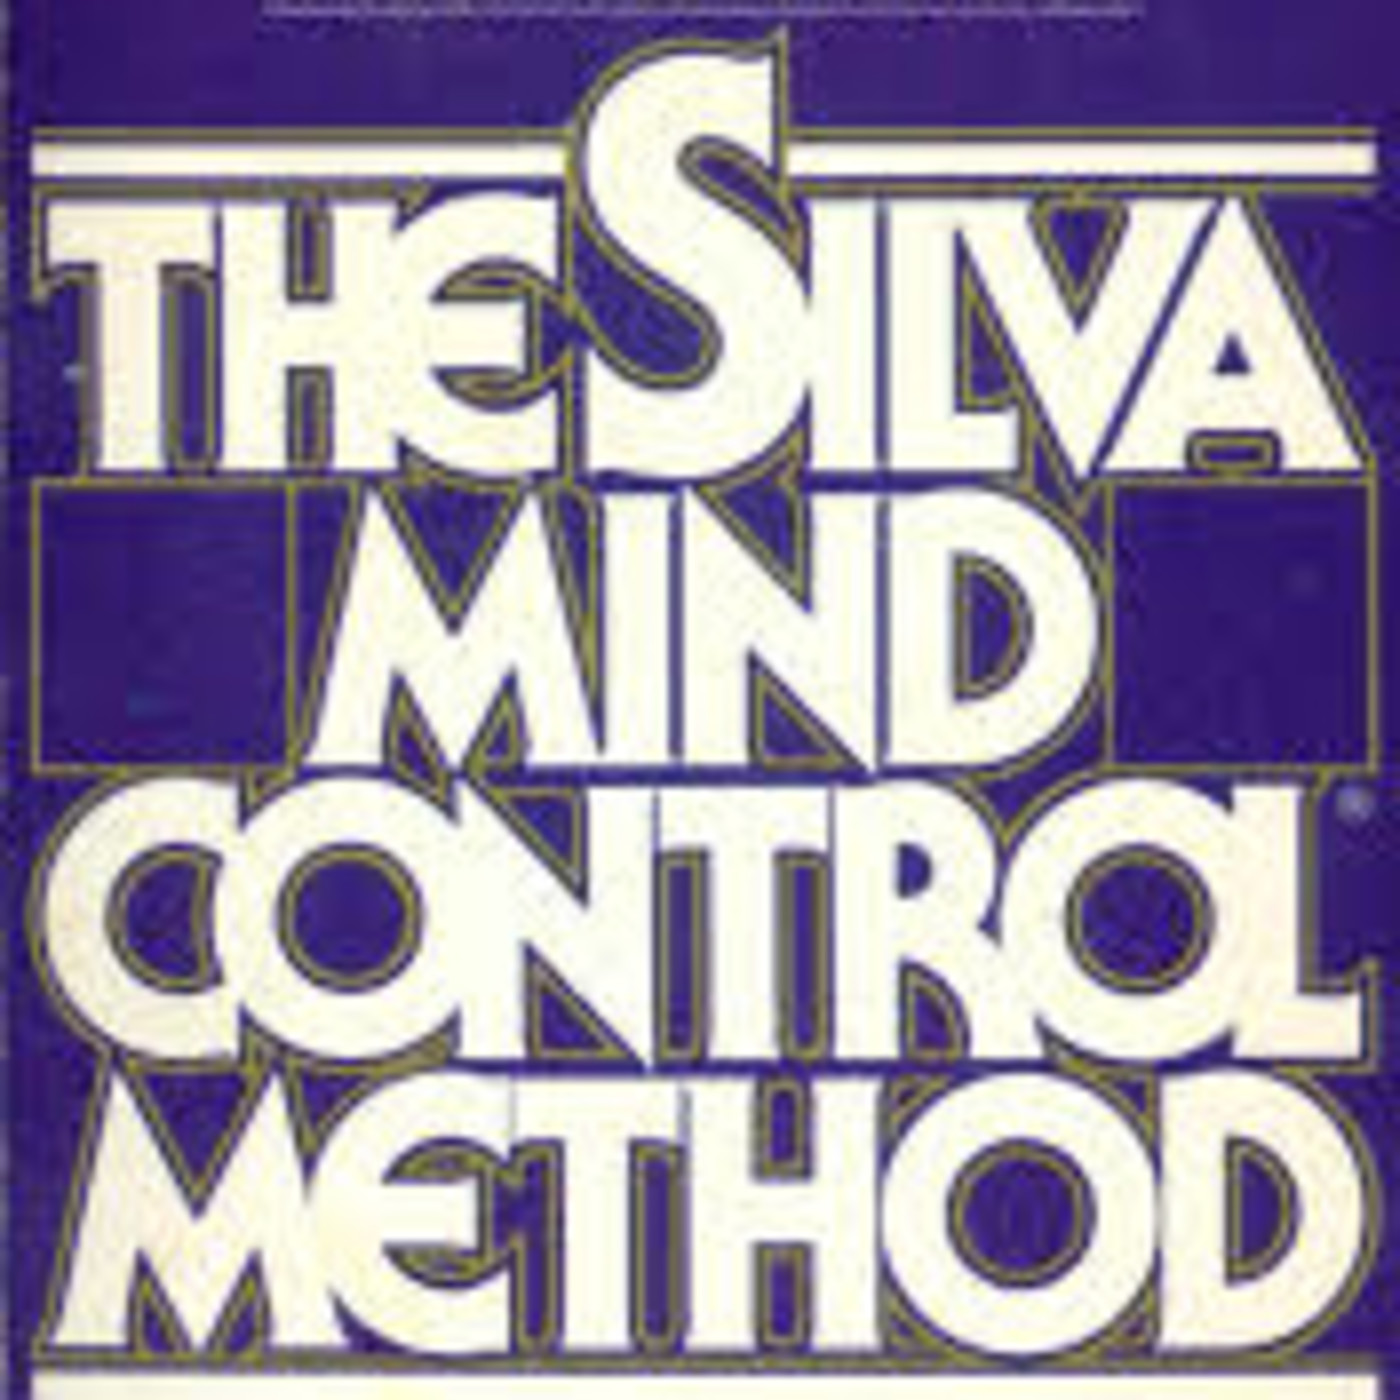 mind control methods in 1984 In writing 1984, orwell's main goal was to warn of the serious danger totalitarianism poses to society he goes to great lengths to demonstrate the terrifying degree of power and control a totalitarian regime can acquire and maintain in such regimes, notions of personal rights and freedoms and.